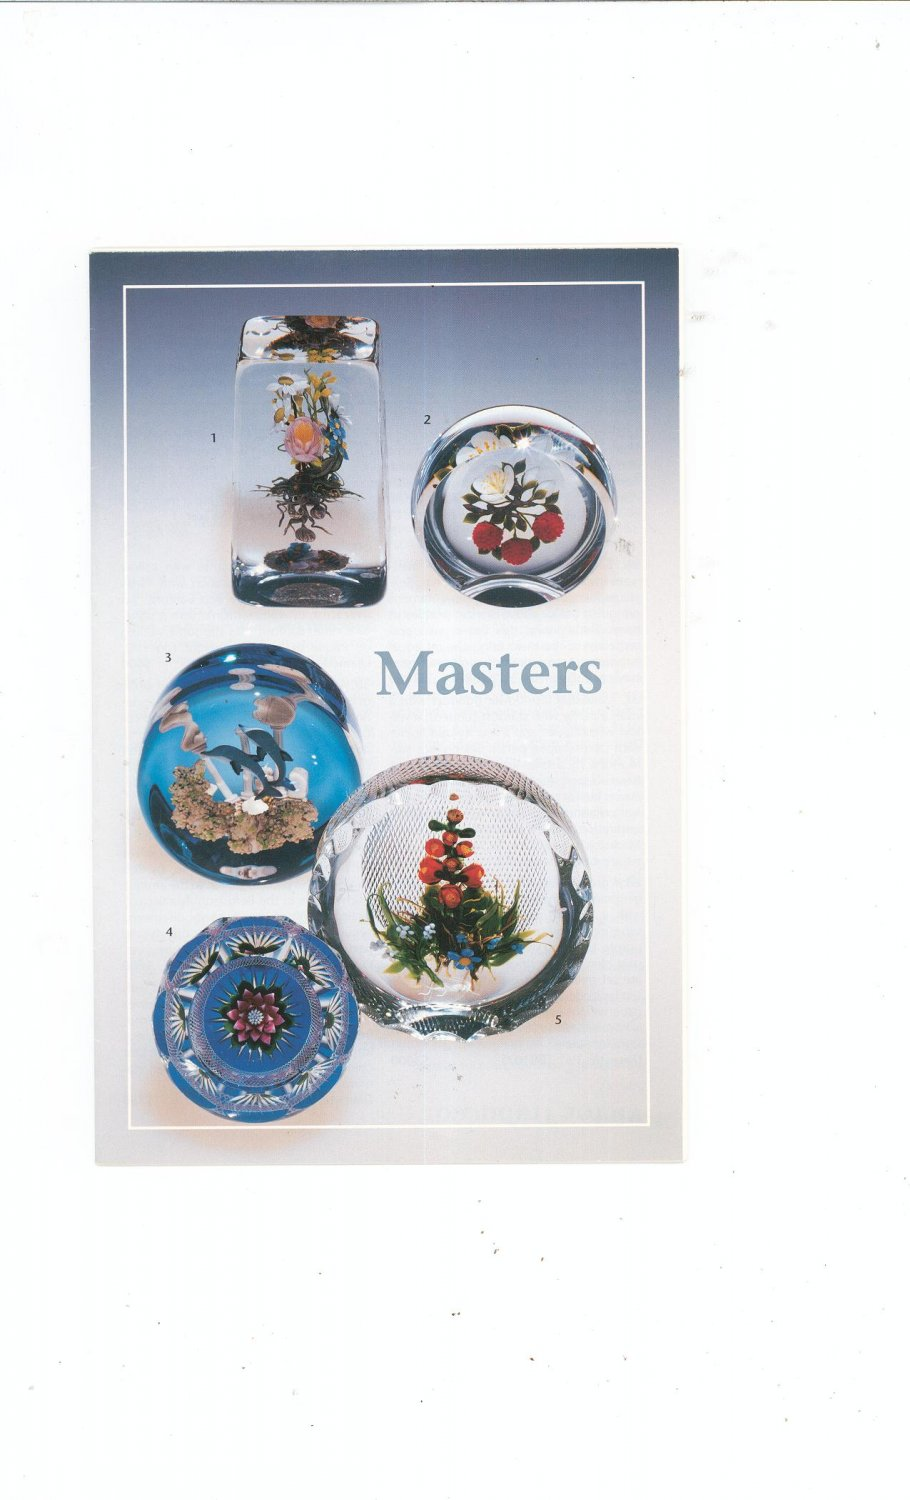 Masters Catalog / Brochure by L. H. Selman Ltd. Paperweights